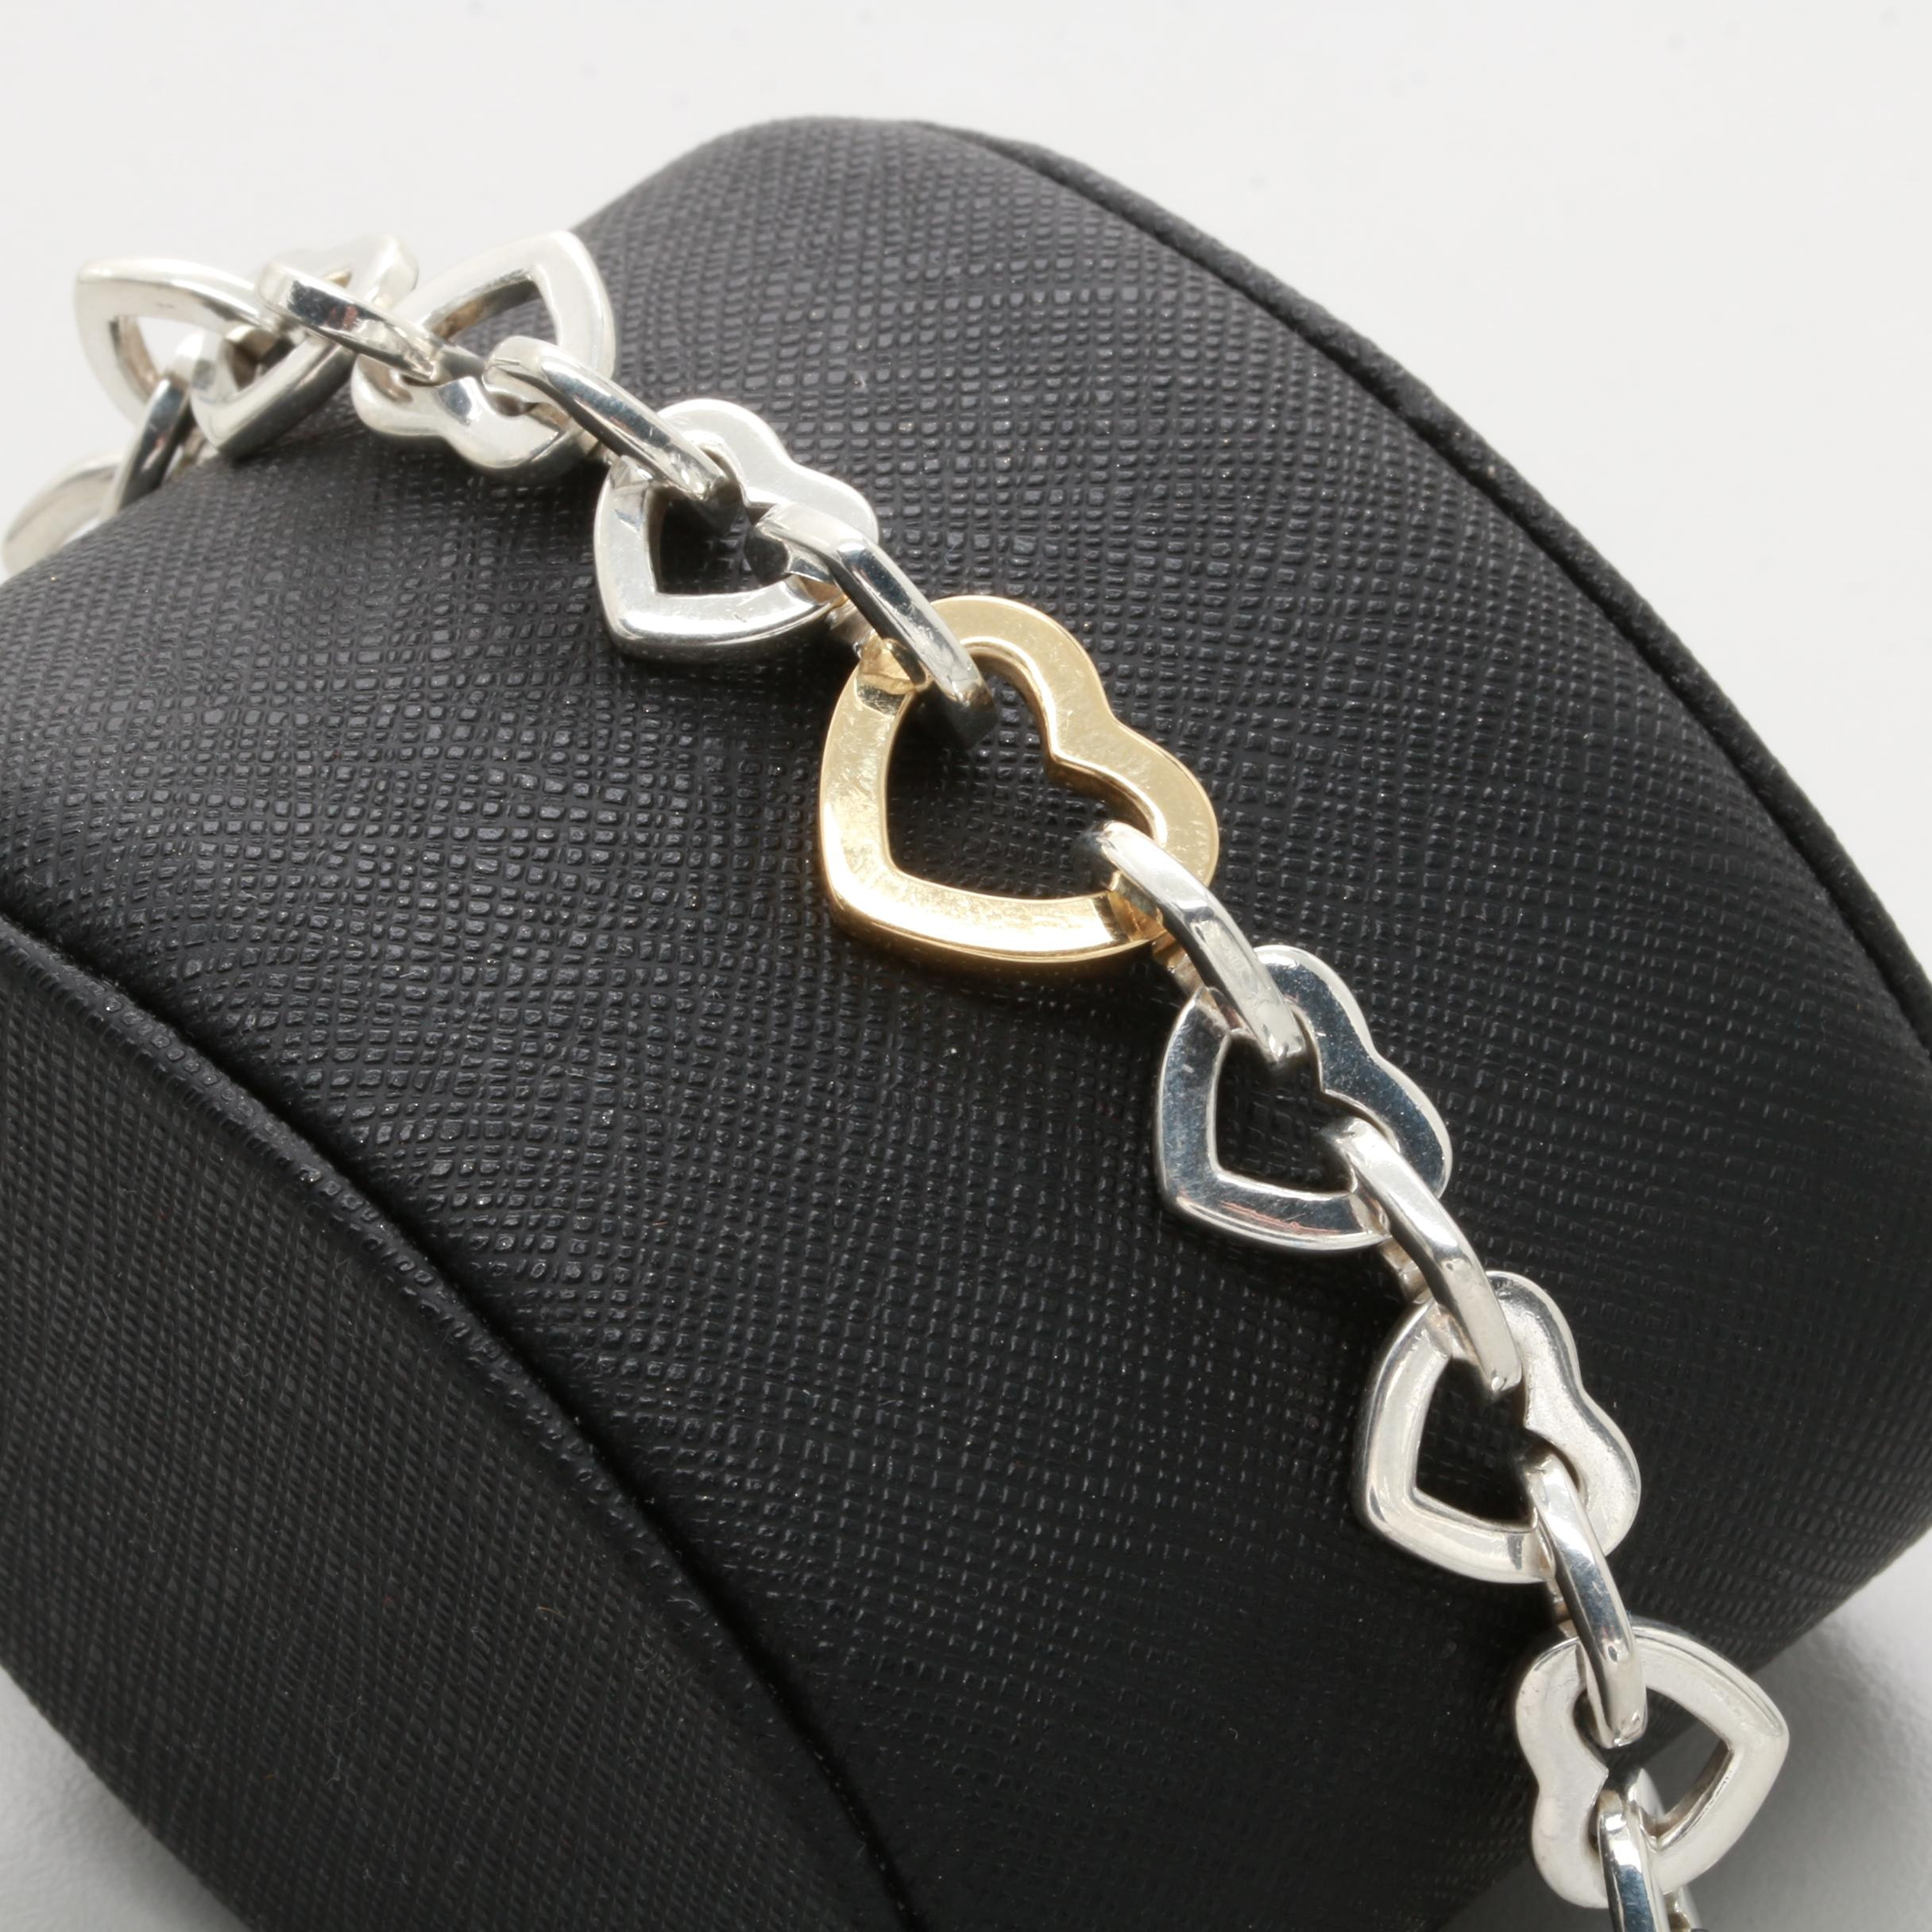 Tiffany & Co. Sterling Silver and 18K Yellow Gold Heart Chain Link Bracelet